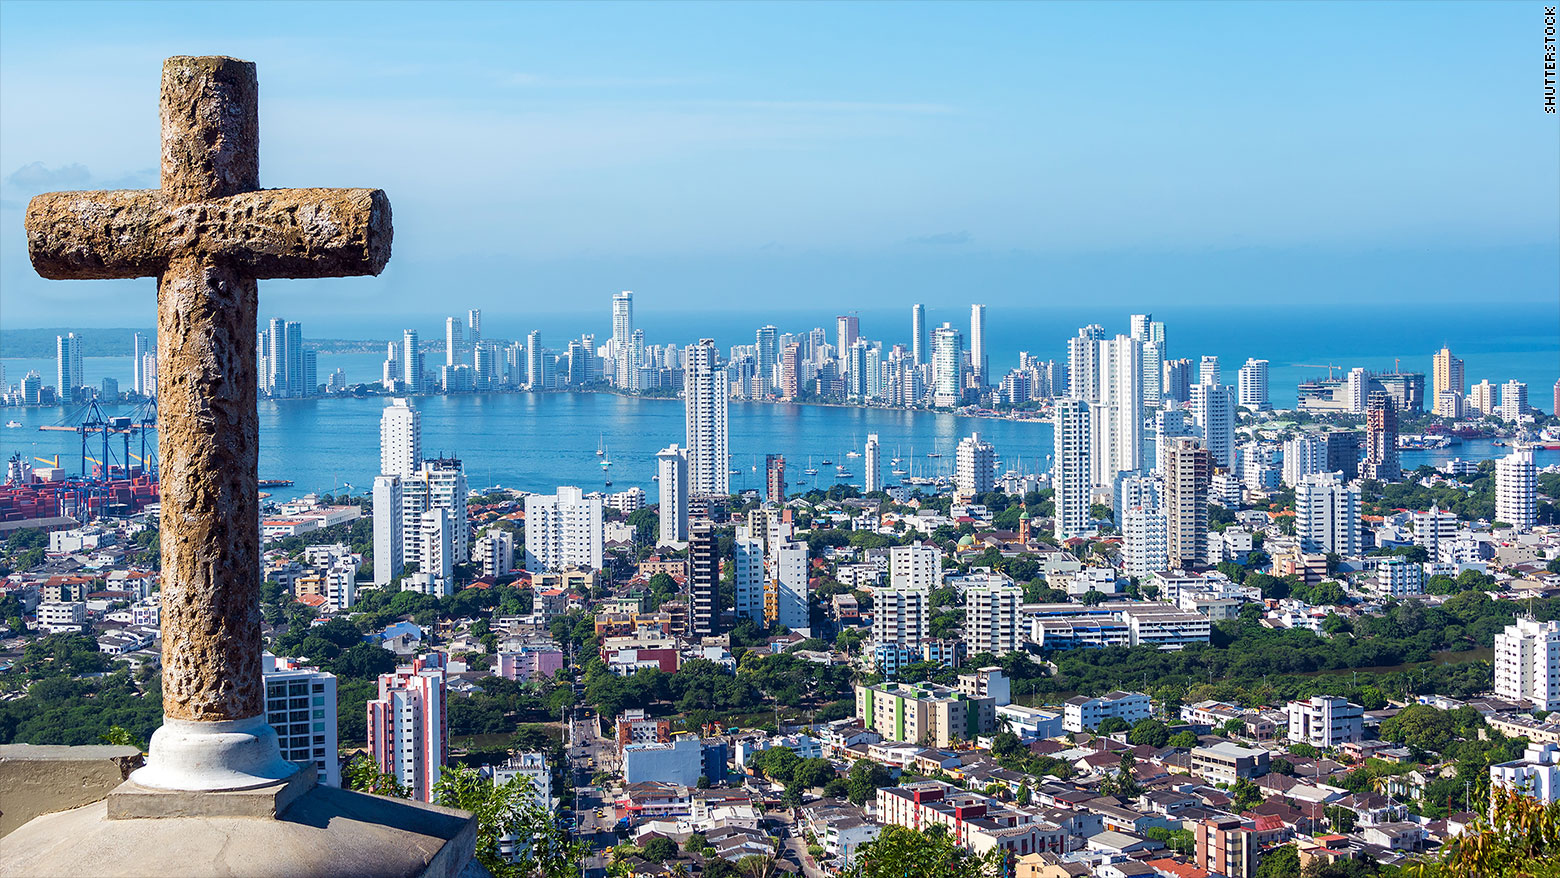 The skyline of Cartagena, Colombia. (Photo credit: http://money.cnn.com)